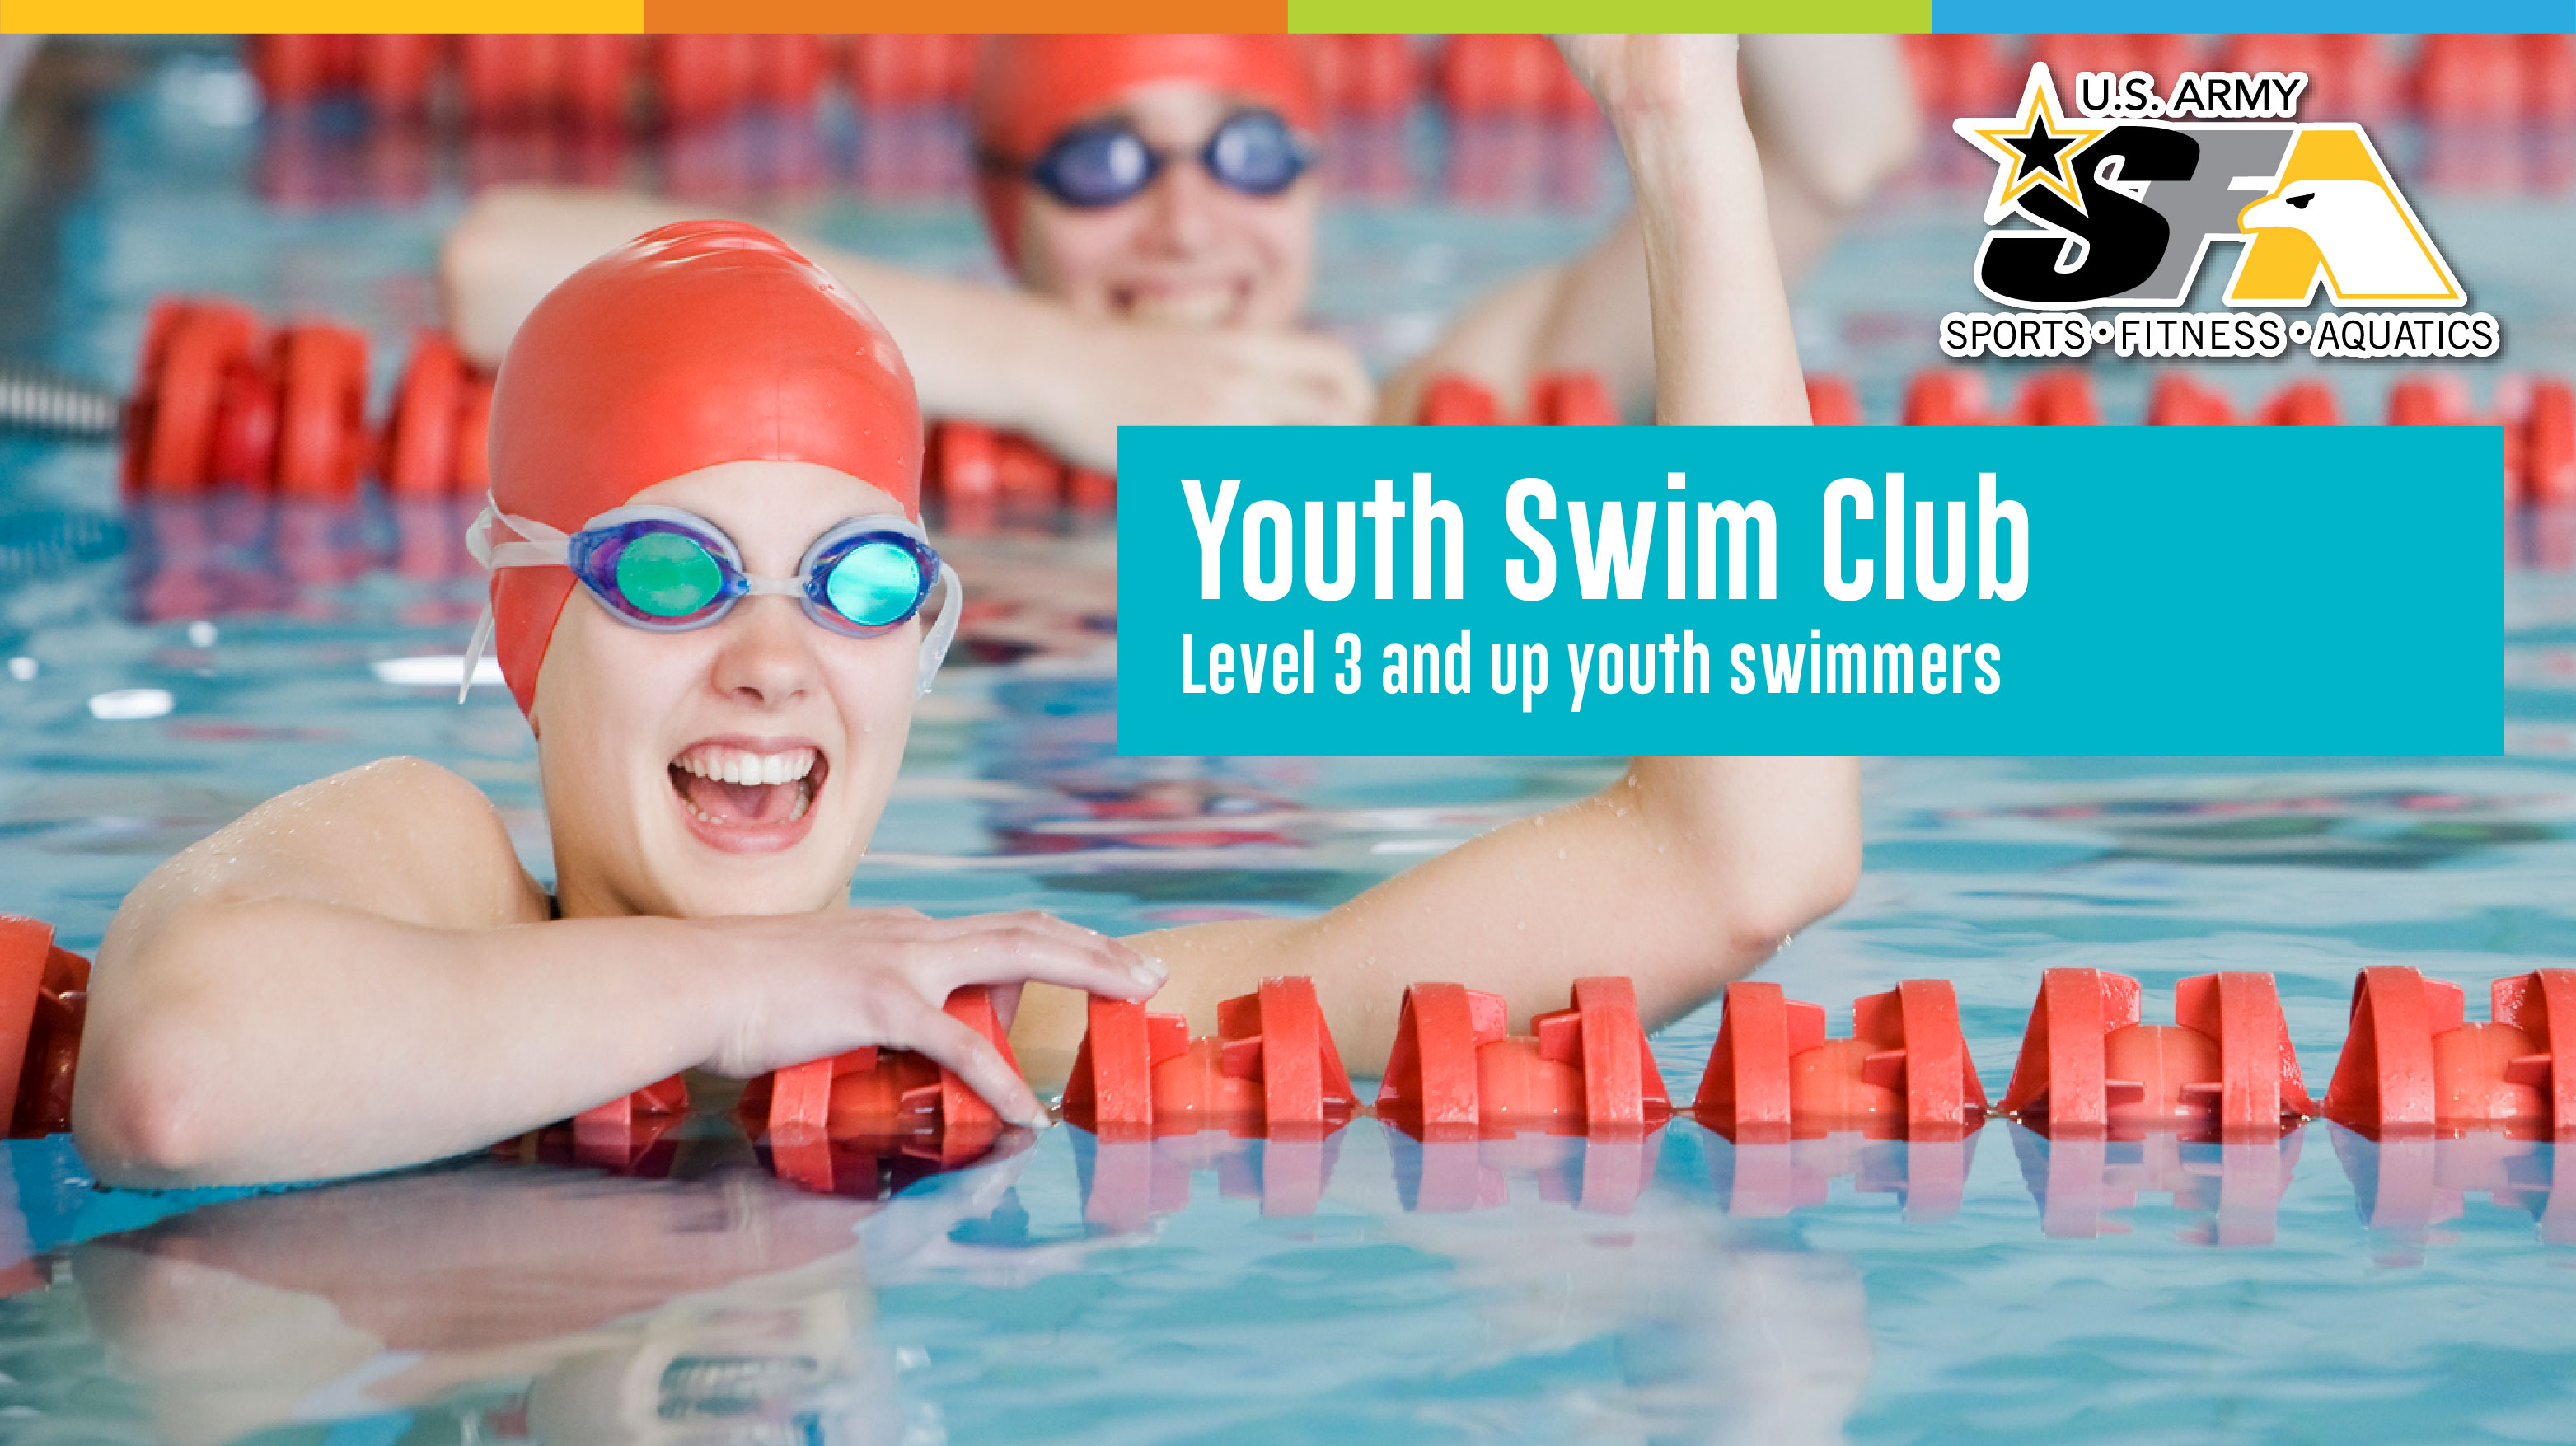 Youth Swim Club